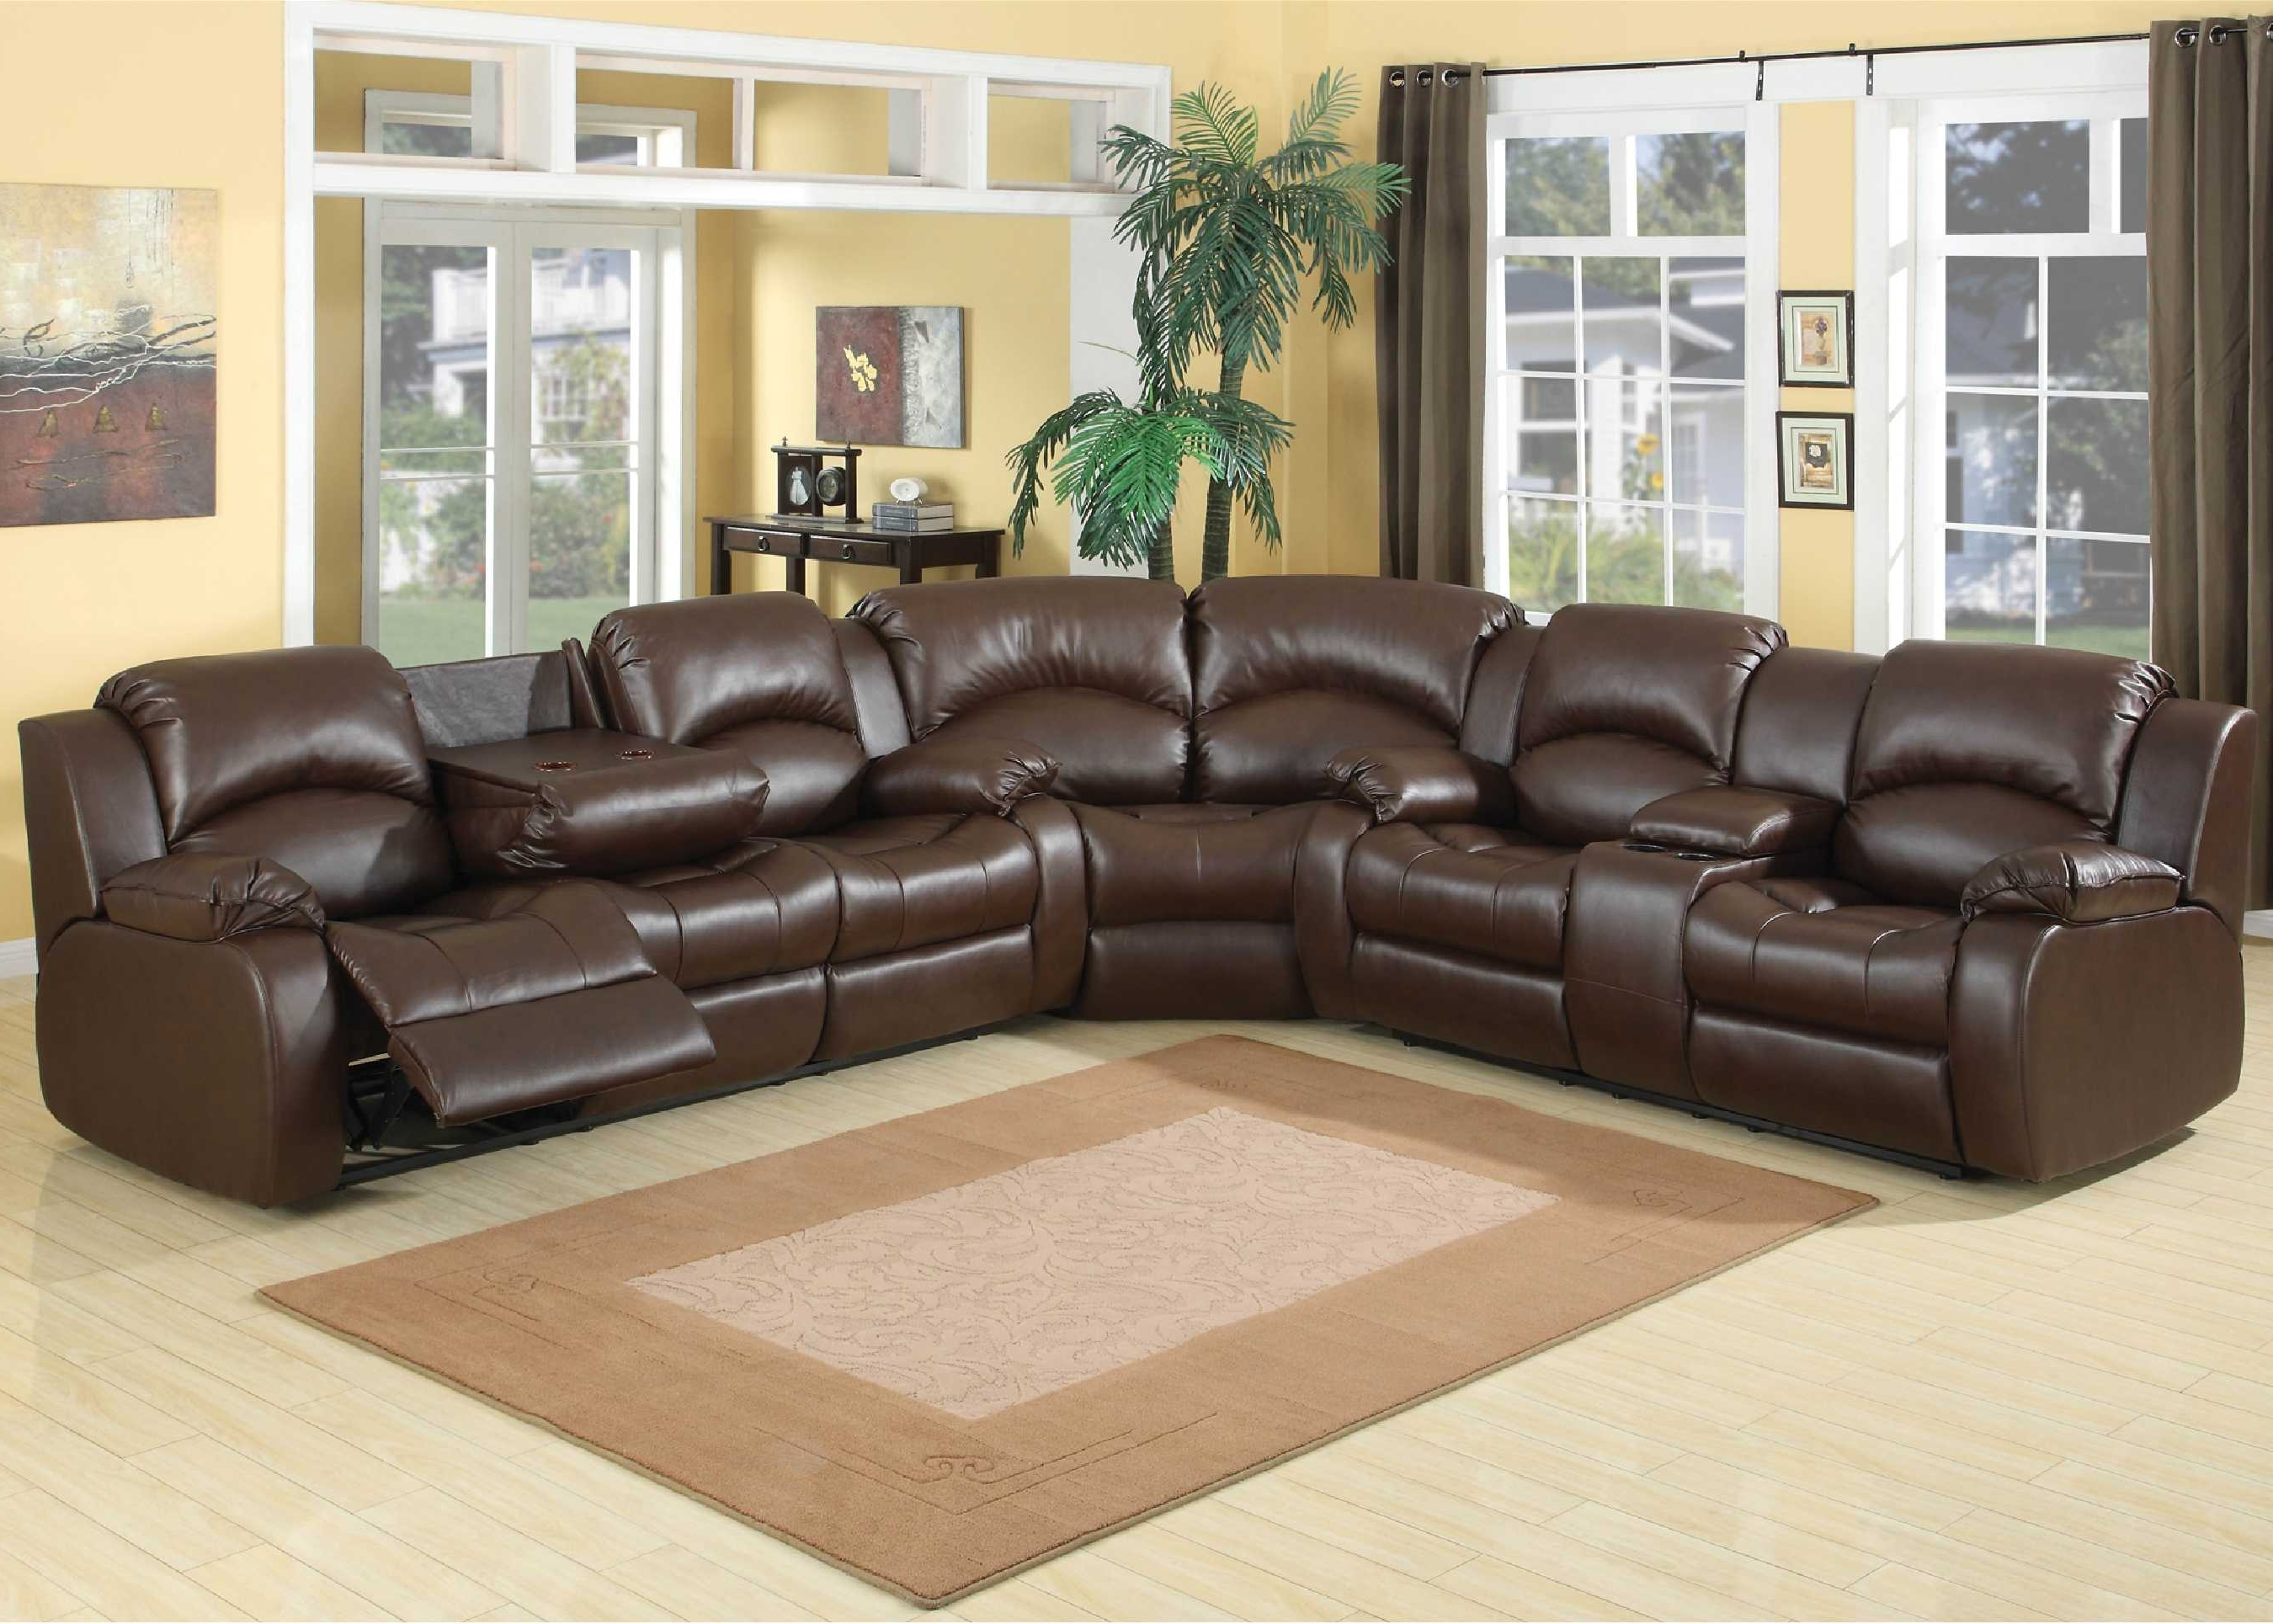 Theatre Sectional Sofas Regarding Latest 16 Theater Sectional Reclining Sofa (View 12 of 20)